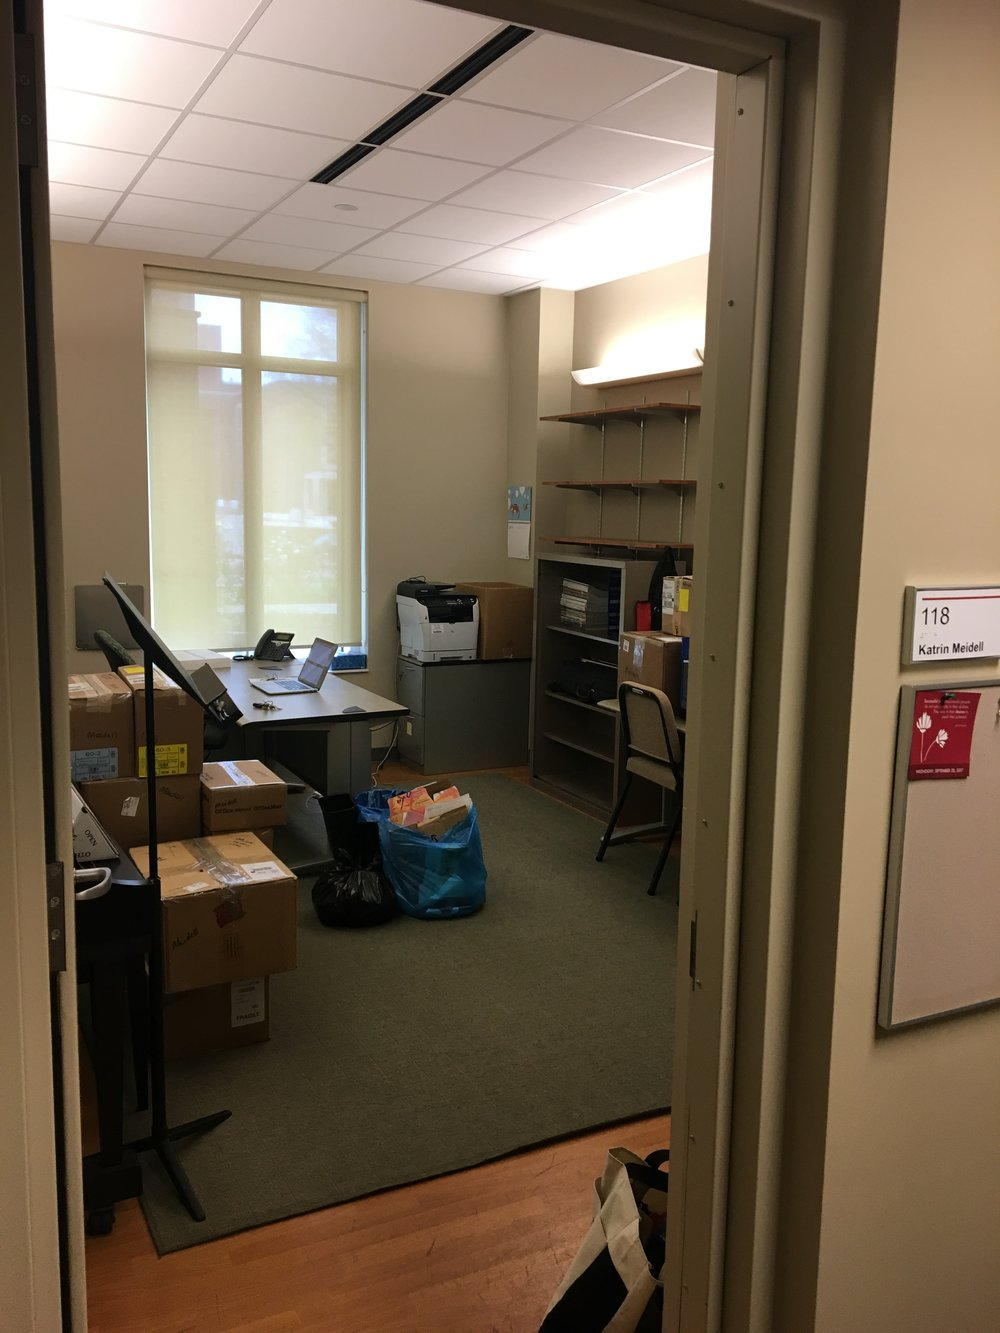 Office nearly packed up. :(